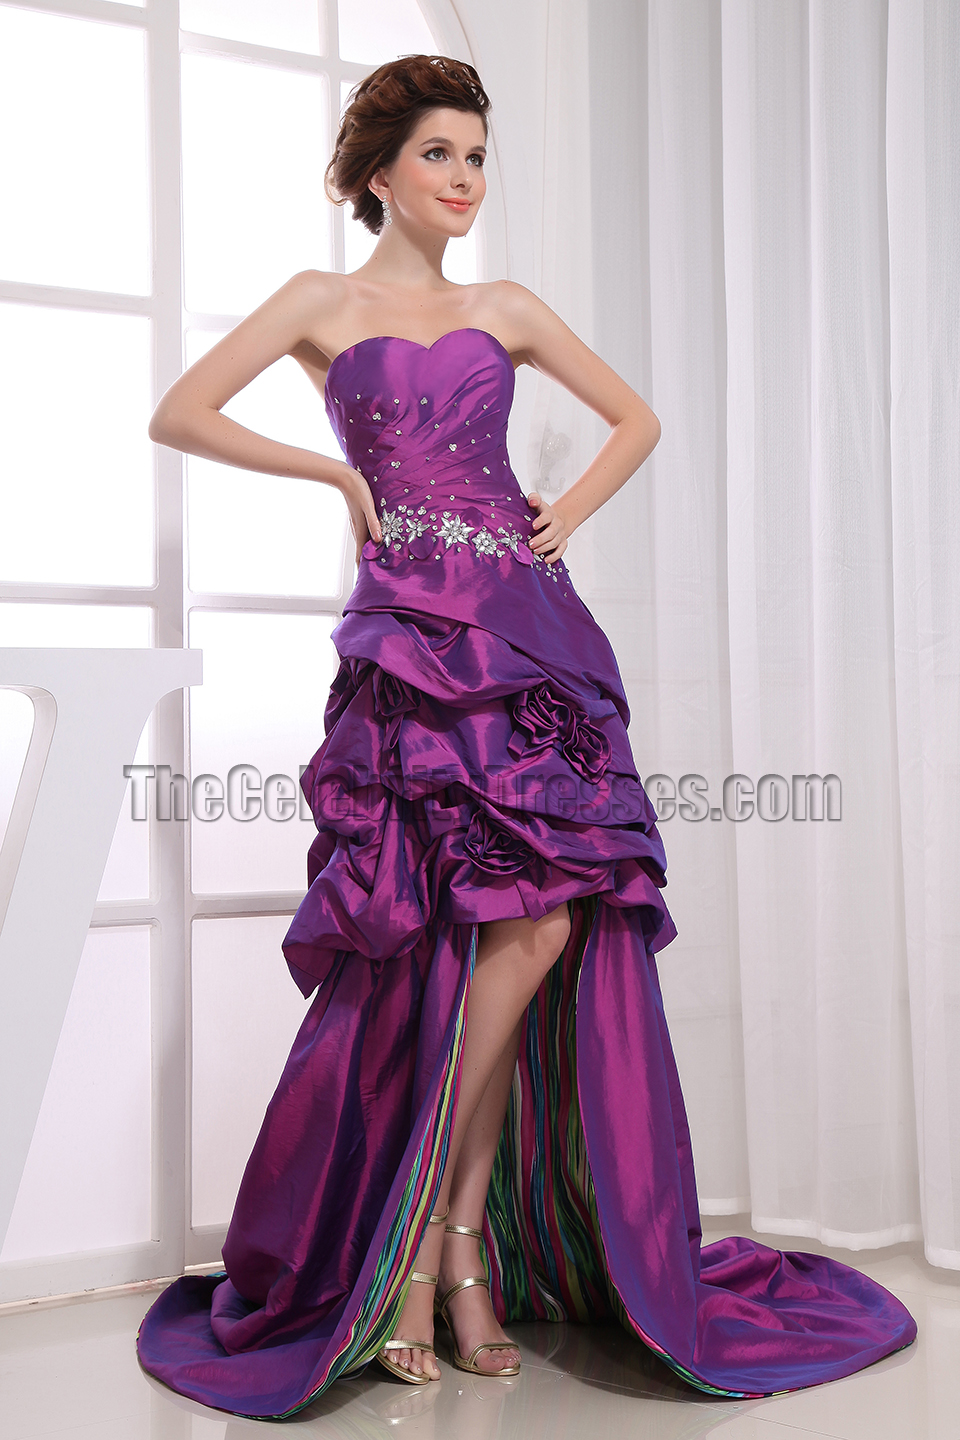 High Low Purple Strapless Prom Dress Formal Gown - TheCelebrityDresses